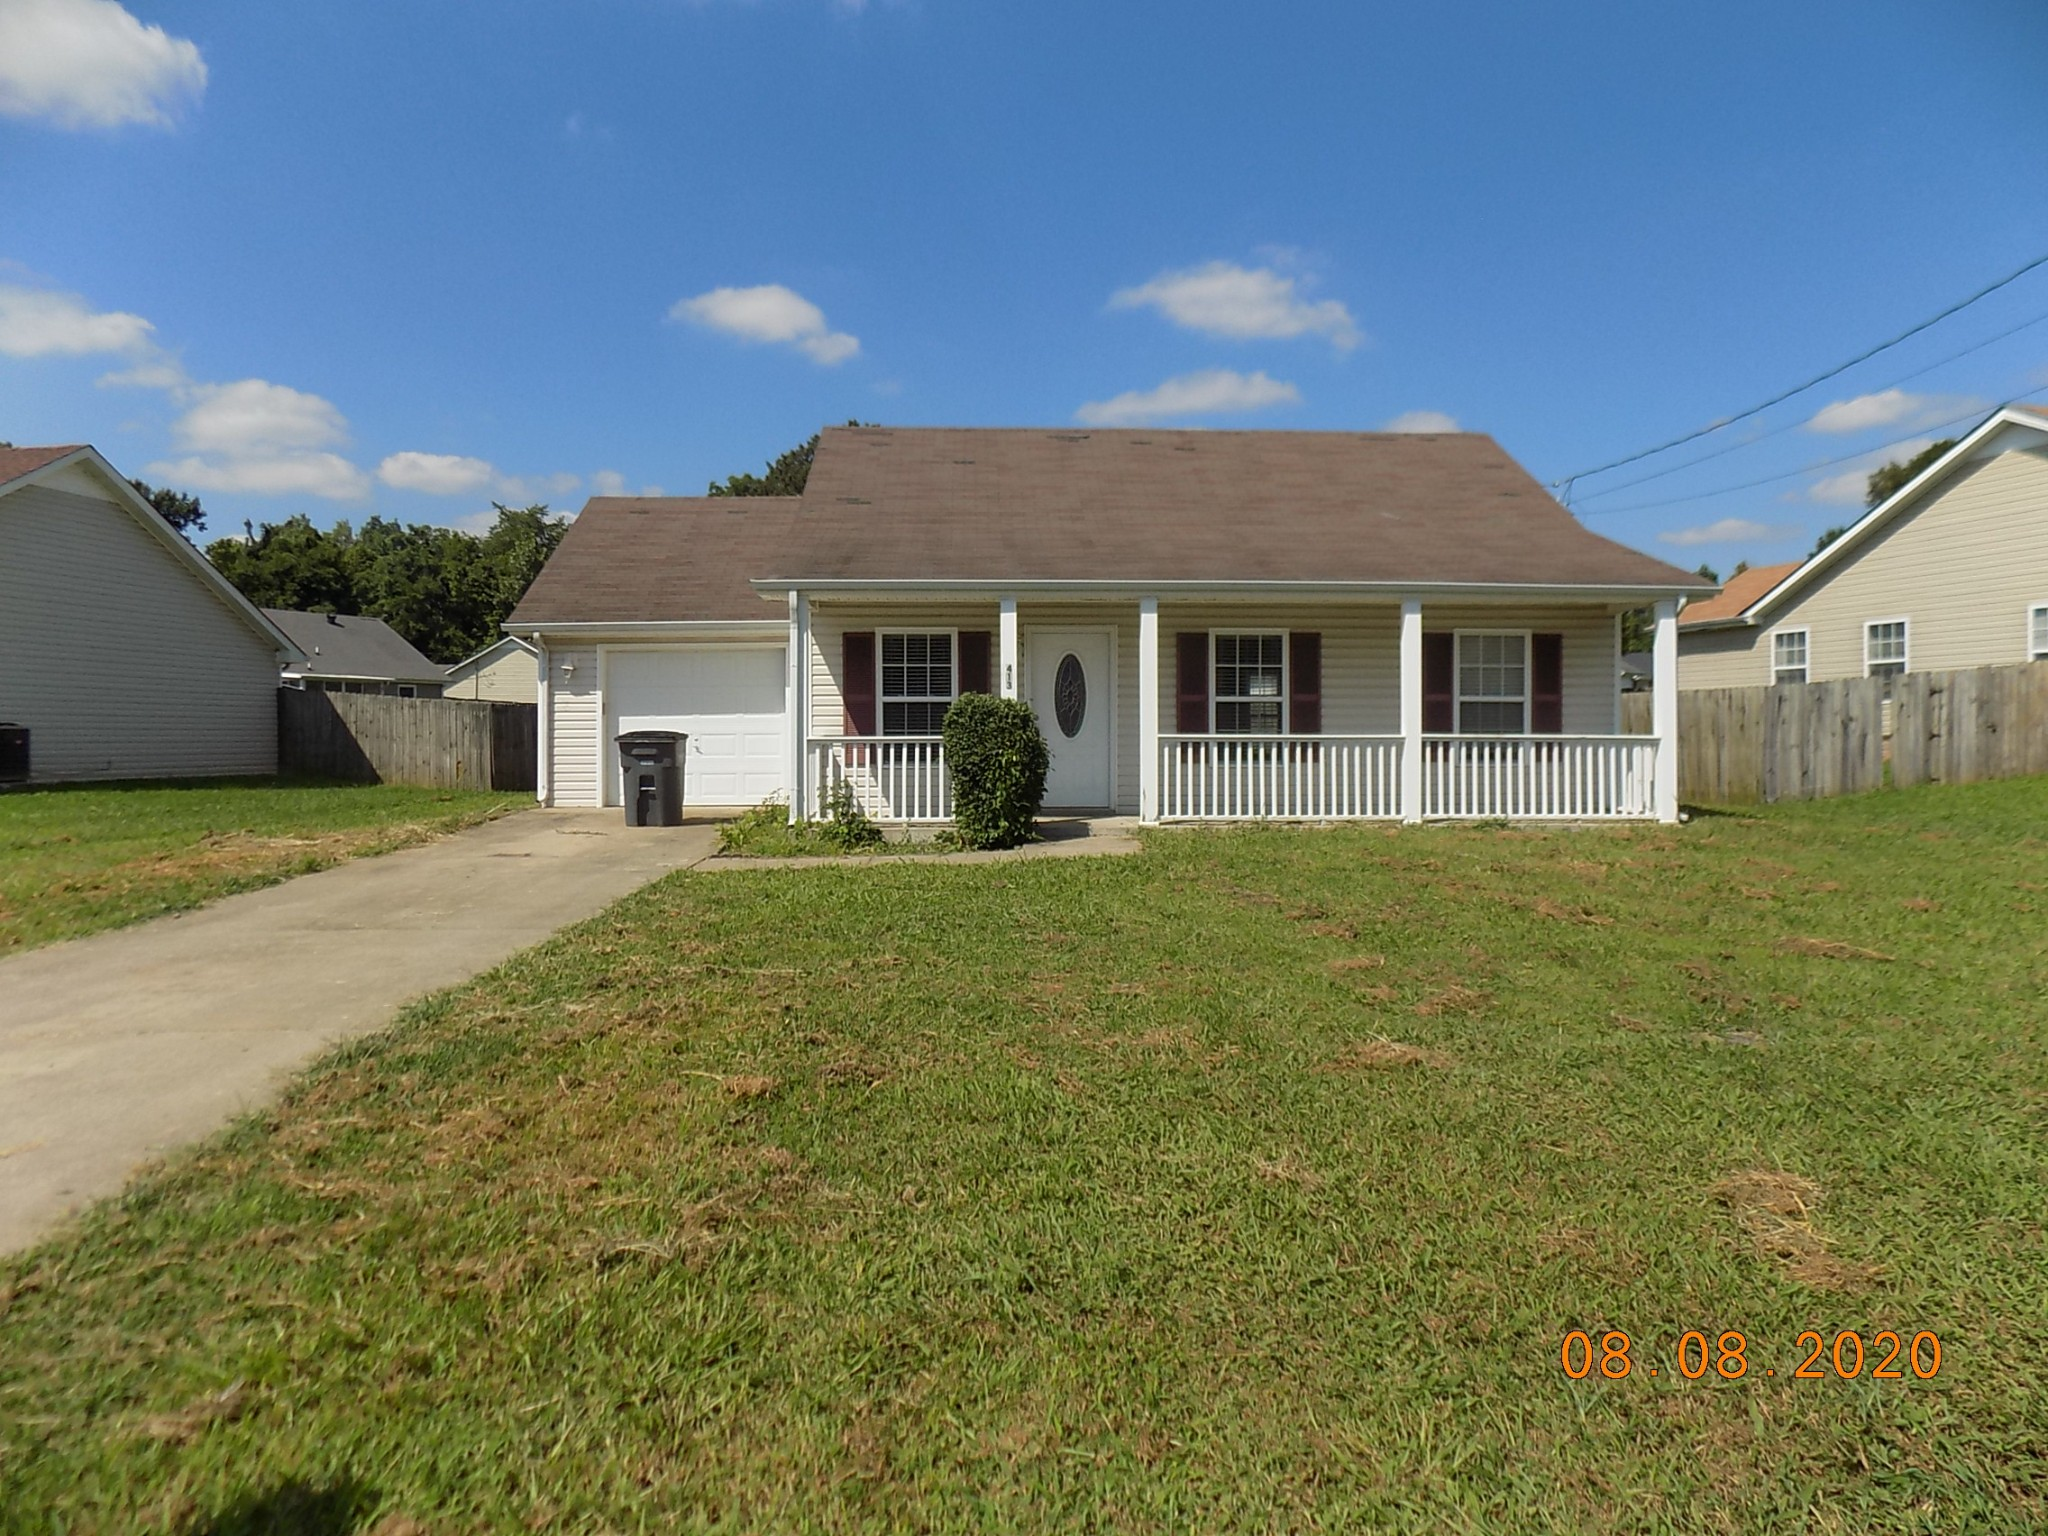 413 Faulkner Dr Property Photo - Clarksville, TN real estate listing